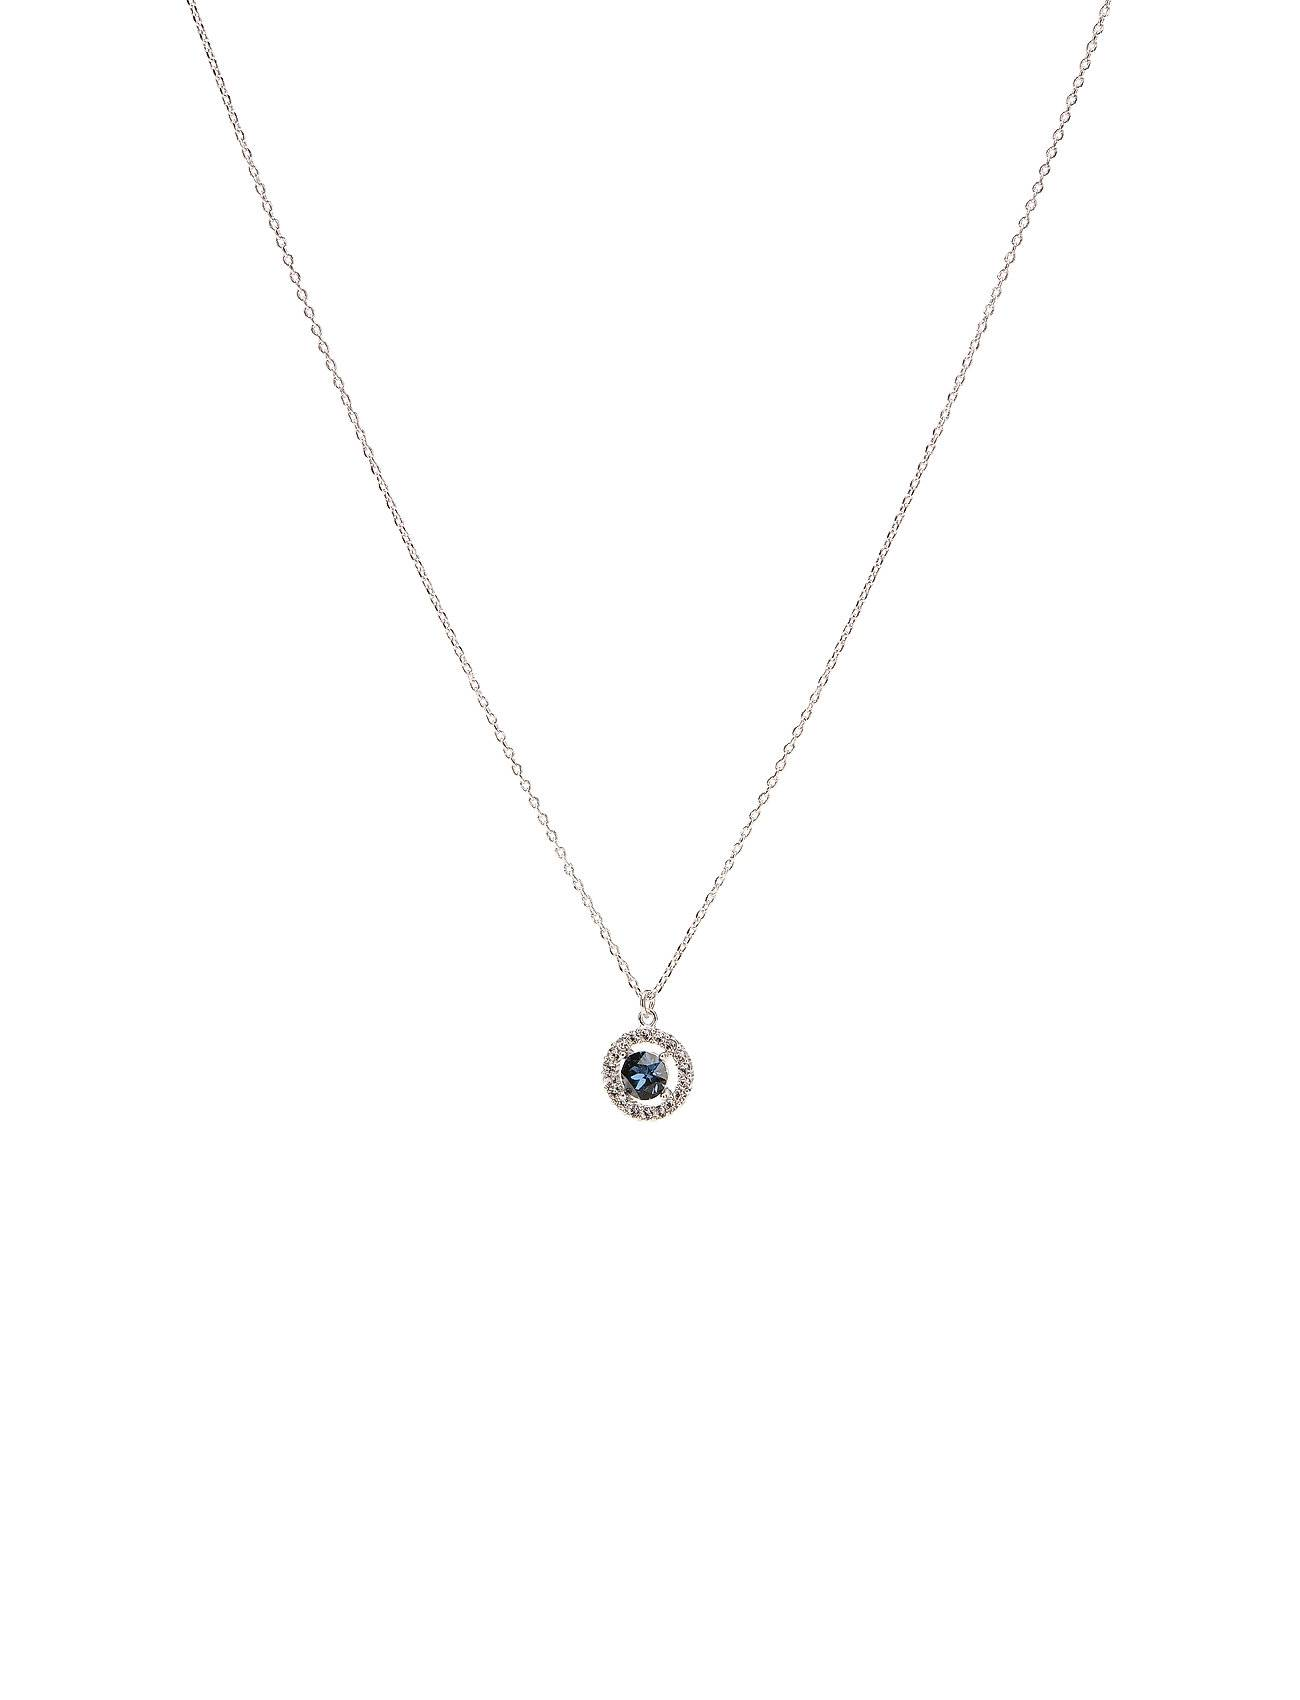 LILY AND ROSE Miss Miranda Necklace - Silver Blue Accessories Jewellery Necklaces Dainty Necklaces Hopea LILY AND ROSE